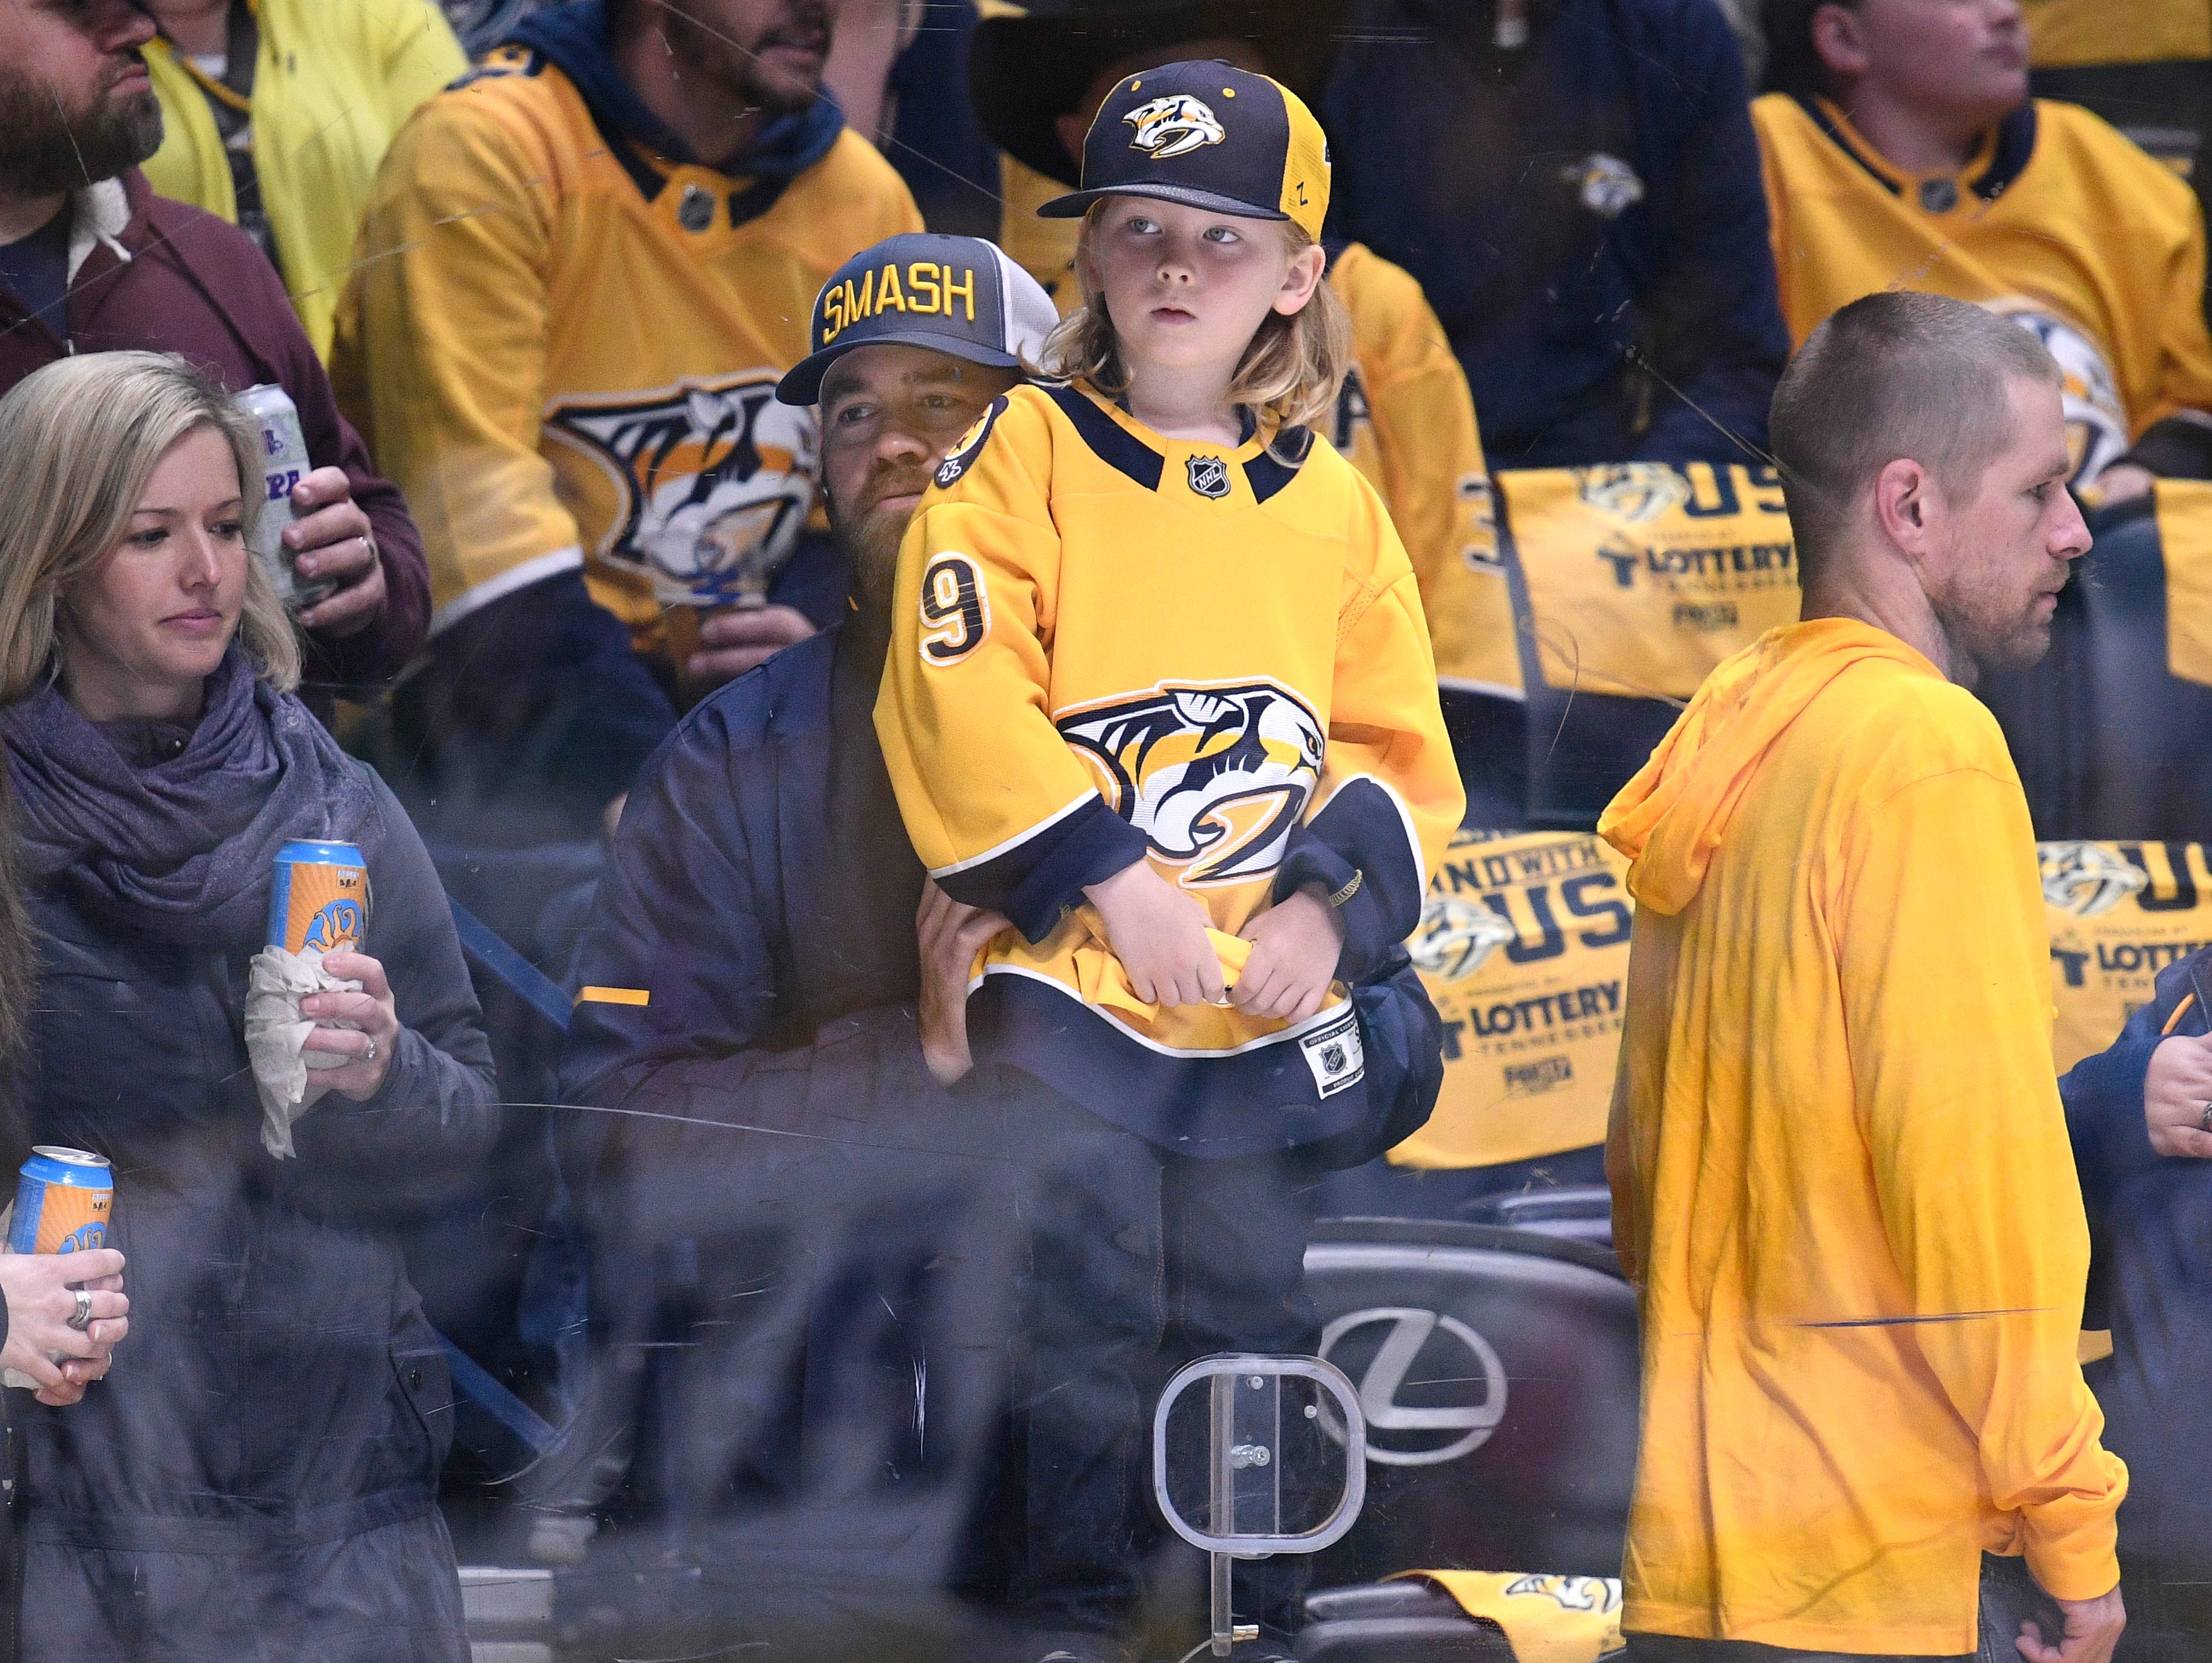 A young Predators fan watches warmups before the divisional semifinal game against the Stars at Bridgestone Arena in Nashville, Tenn., Saturday, April 20, 2019.